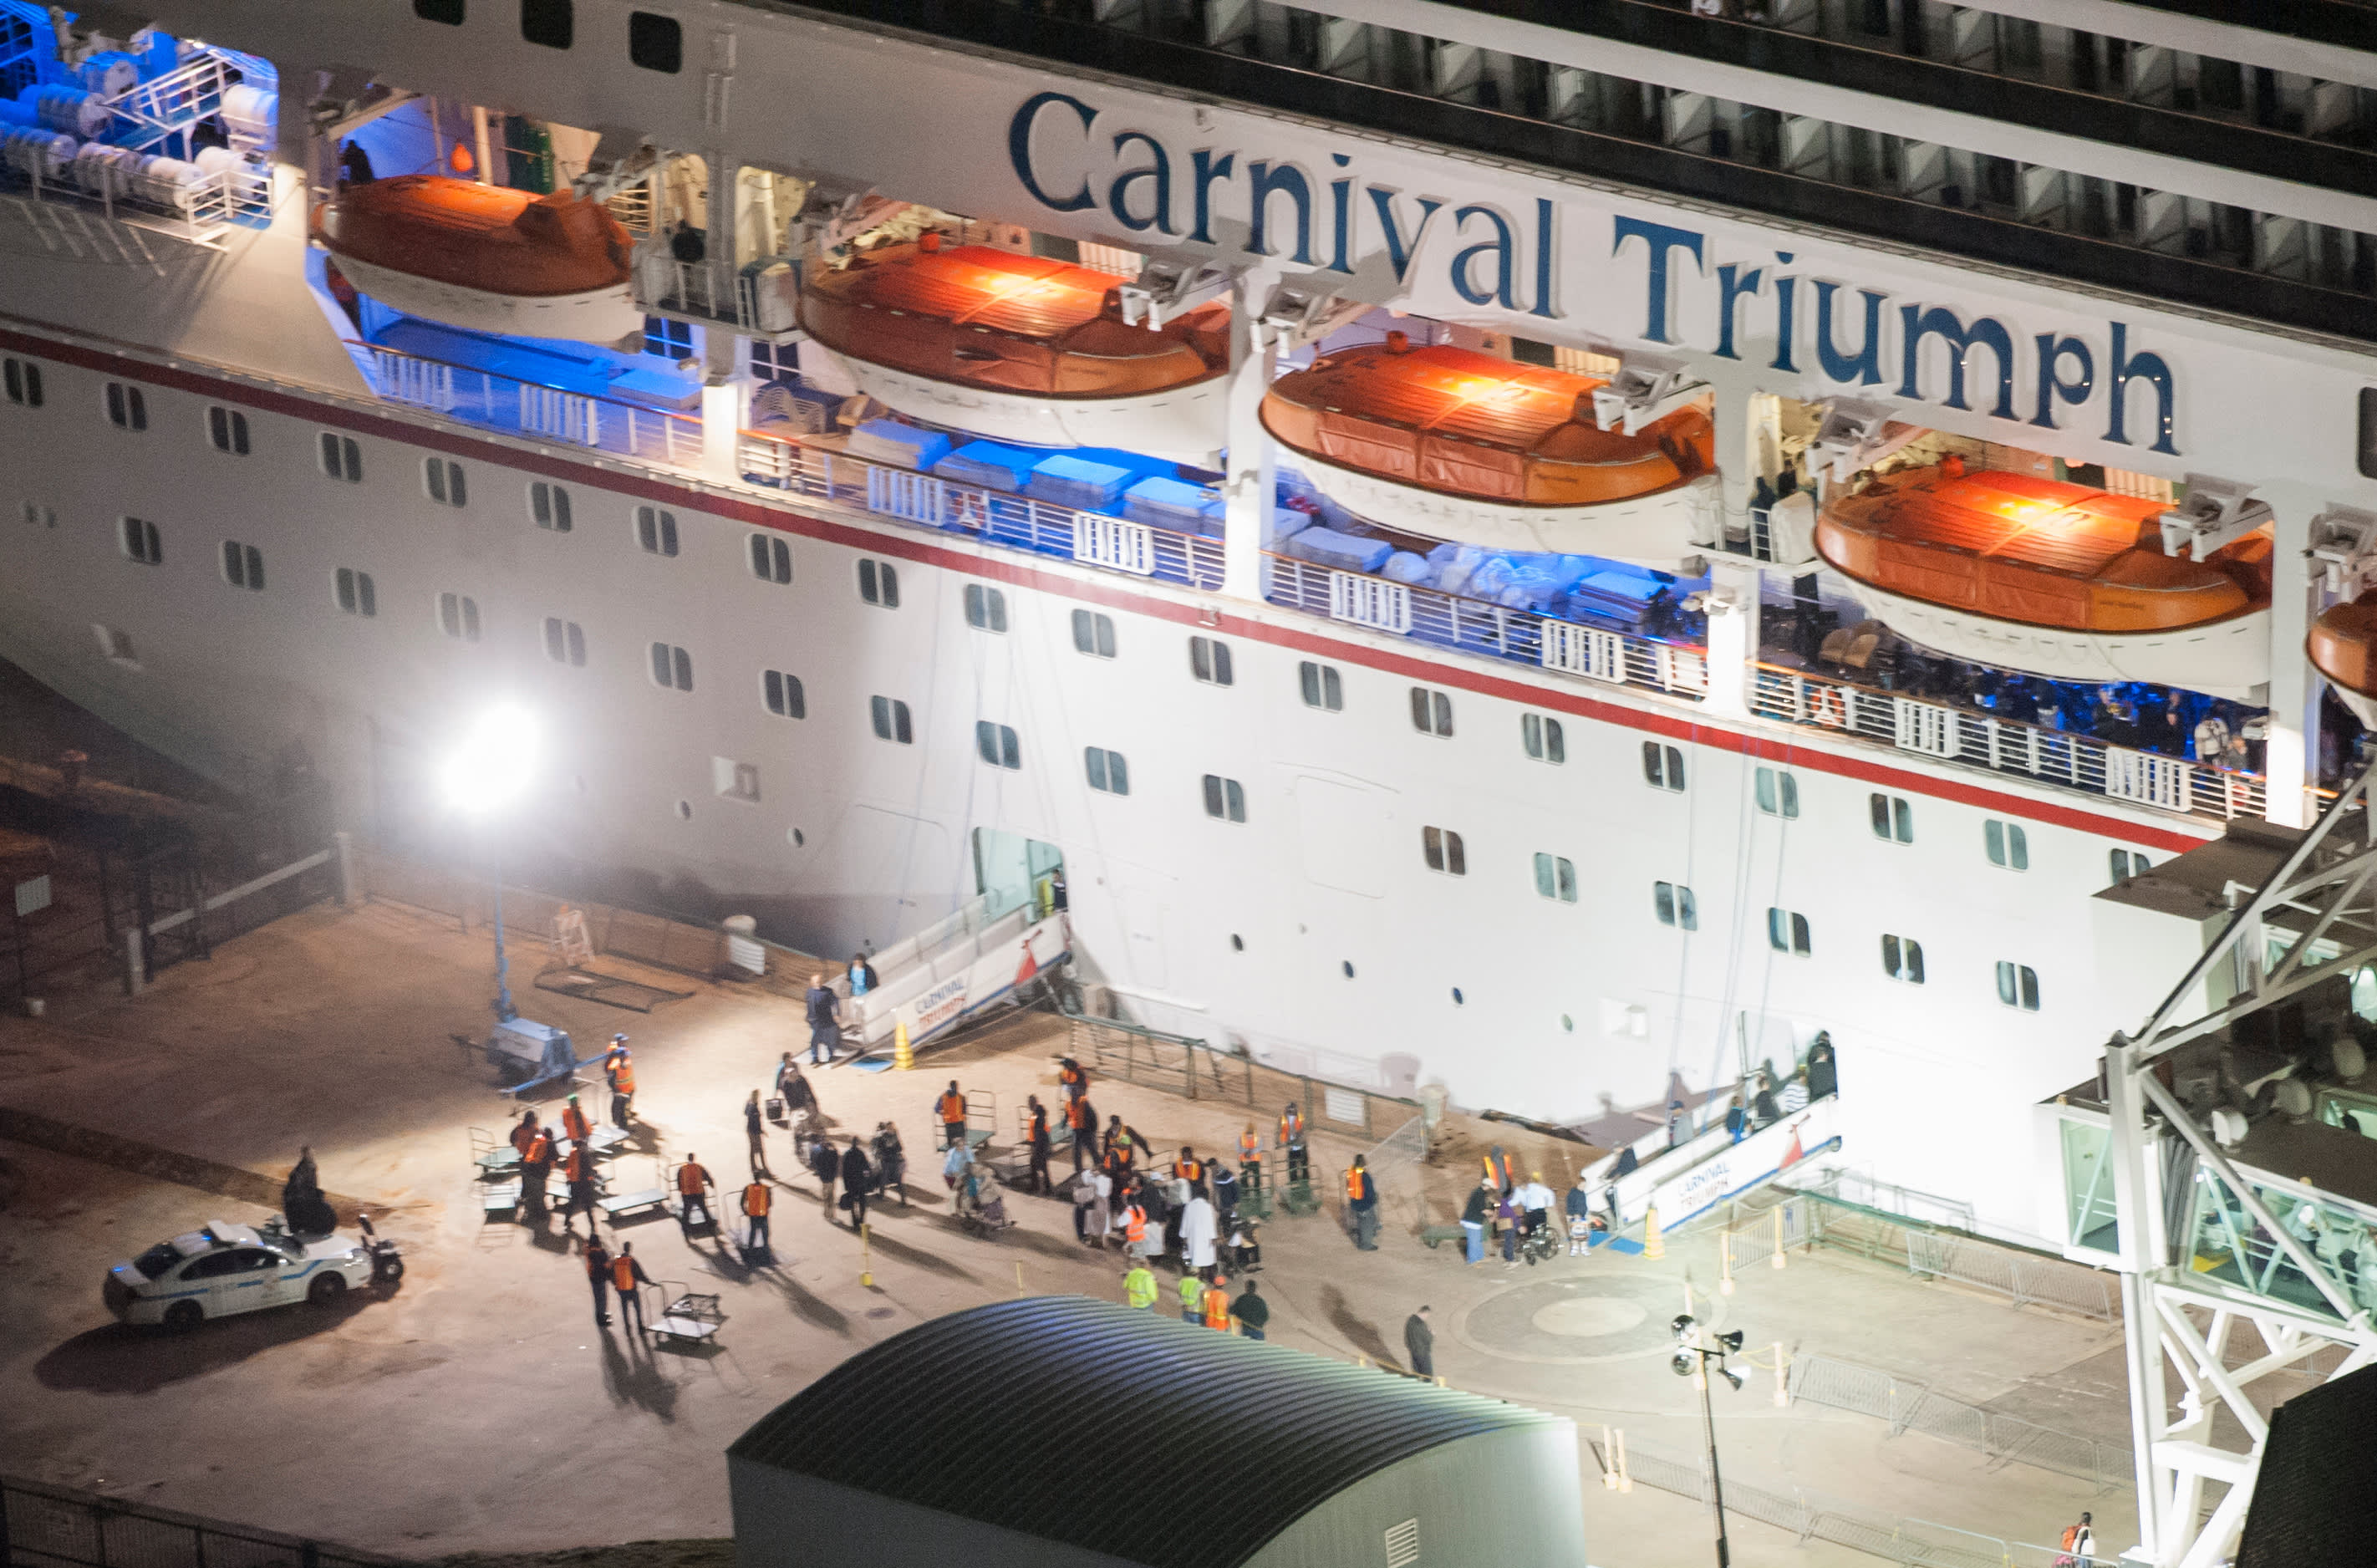 Carnival cruise ship triumph disaster